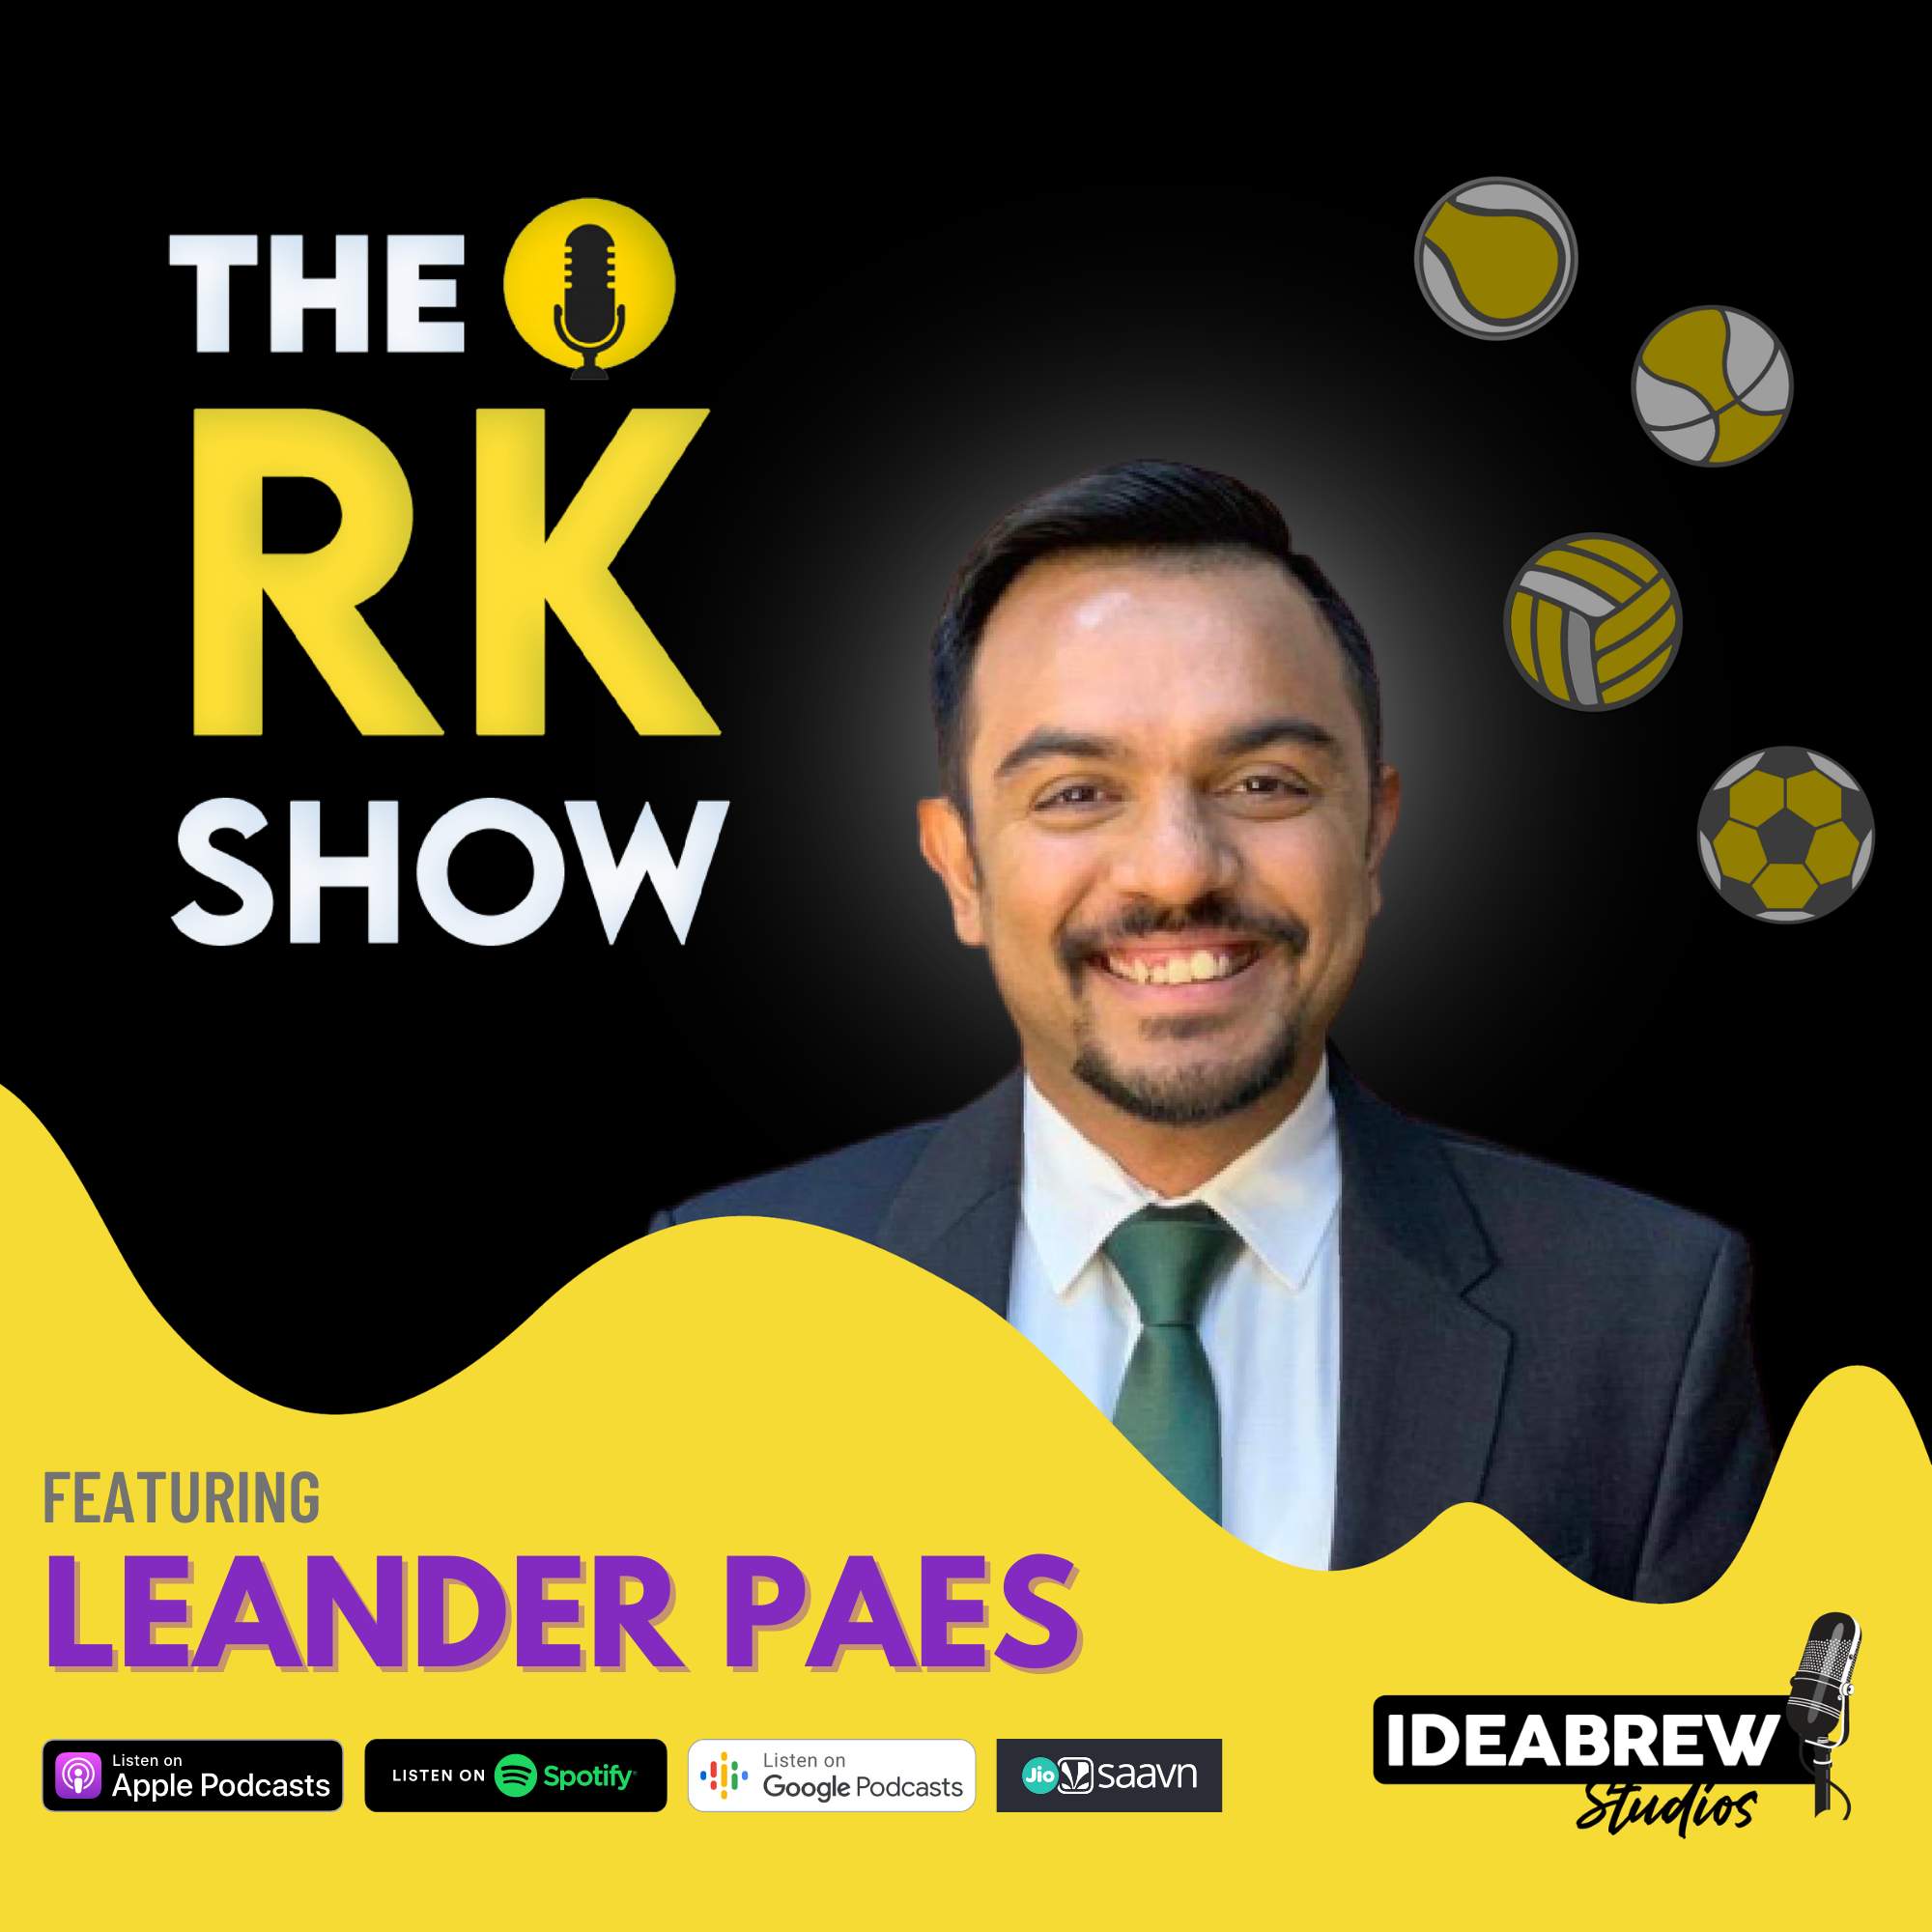 Leander Paes on Longevity and Reinvention